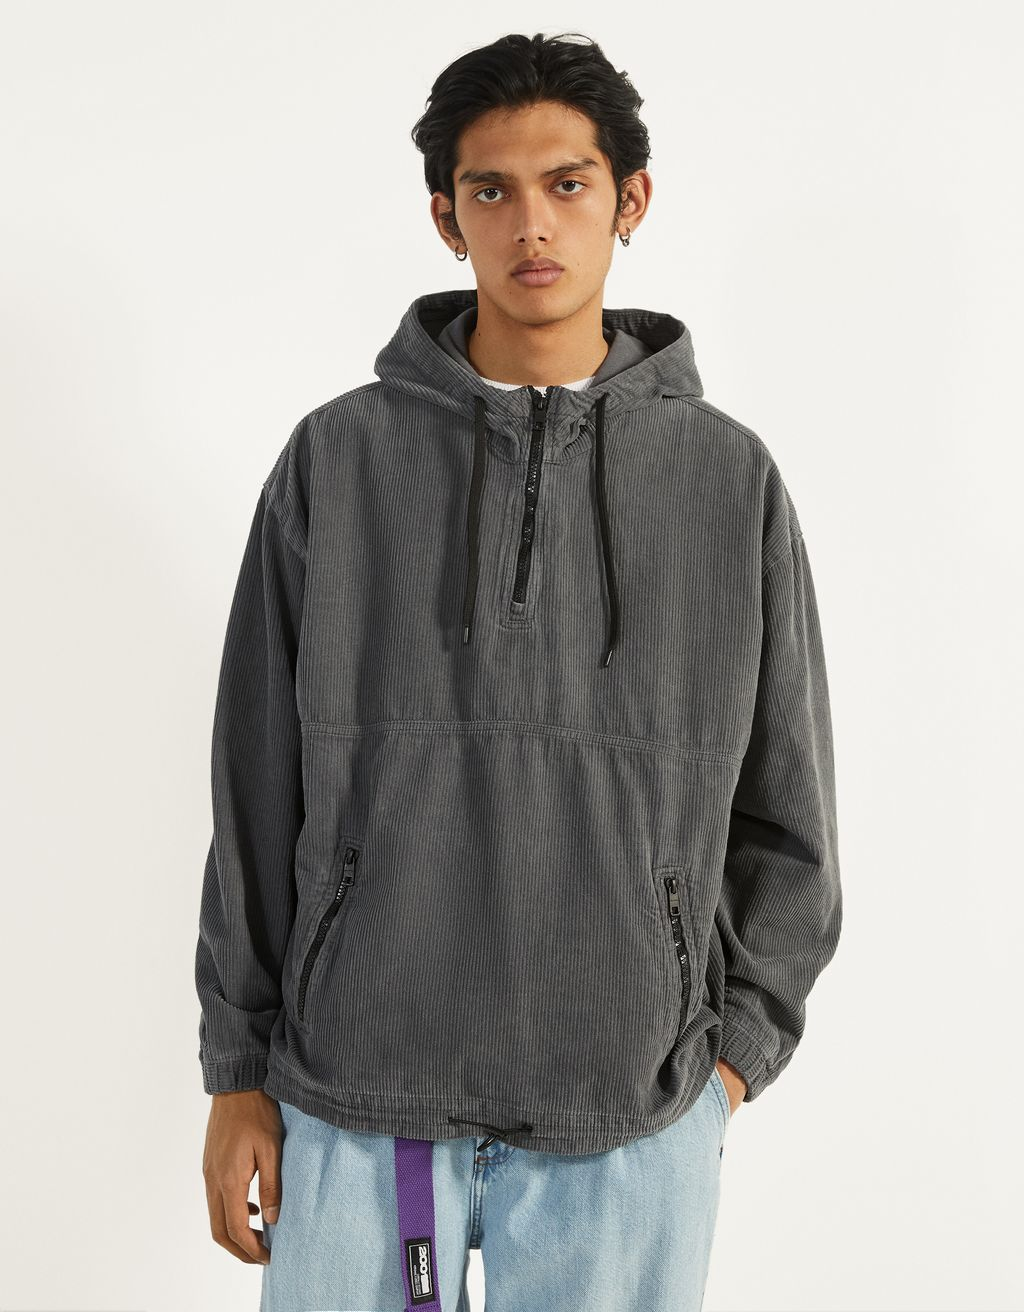 Hooded corduroy sweatshirt